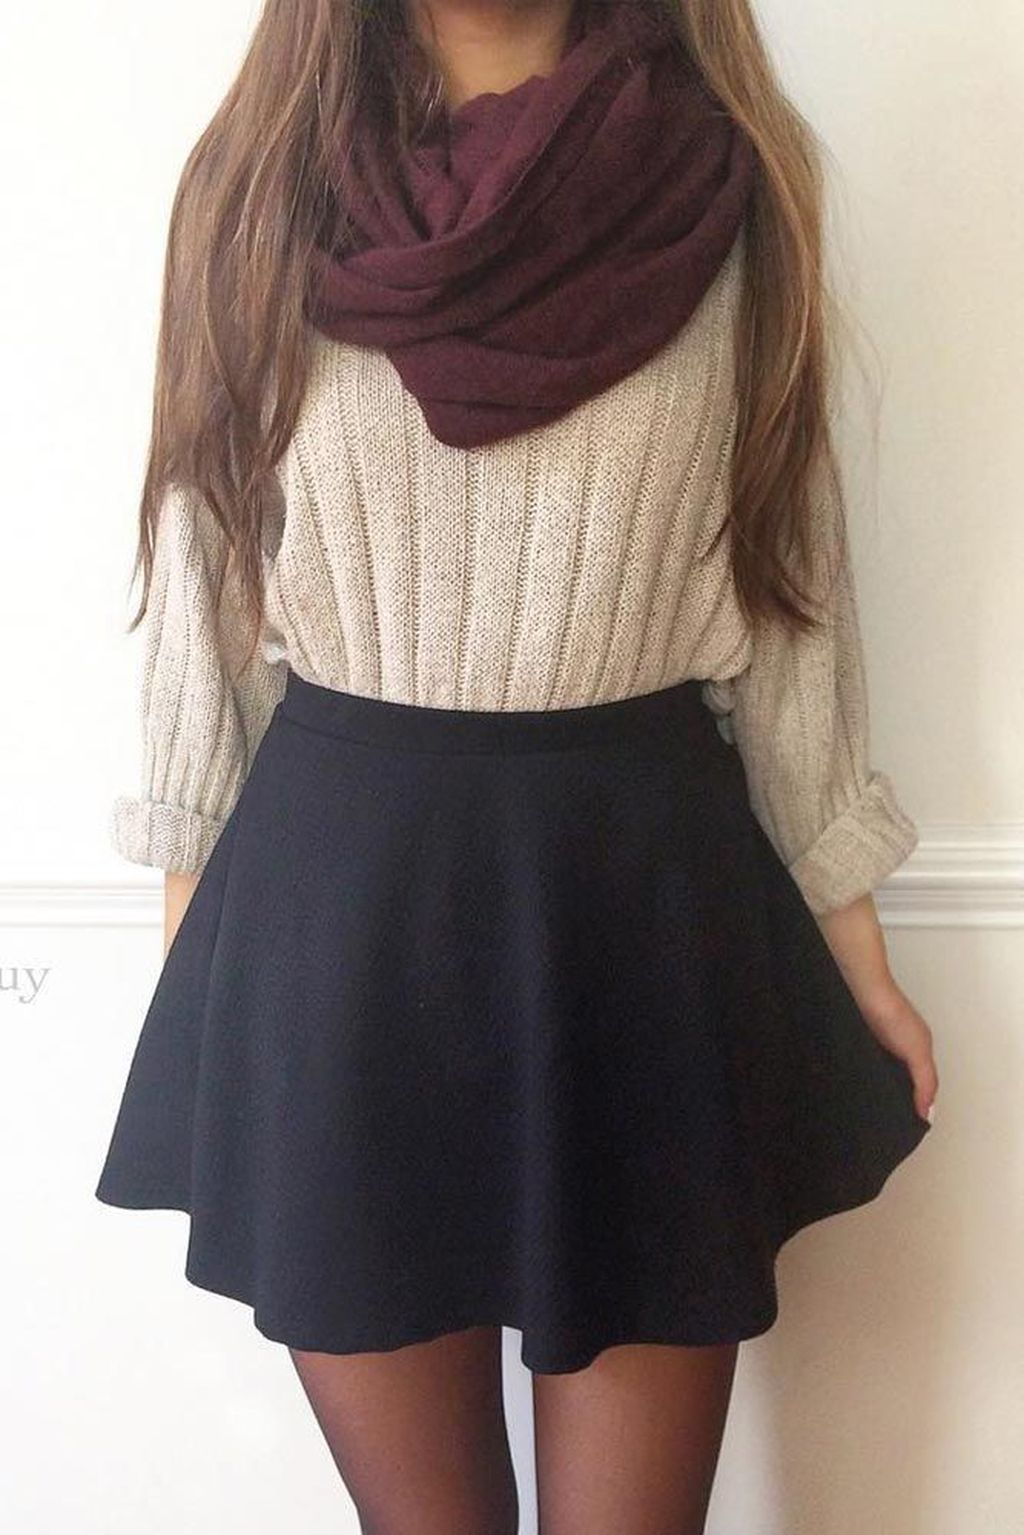 Pin by Issy on Characters | Outfits, Fashion outfits, Cute ...